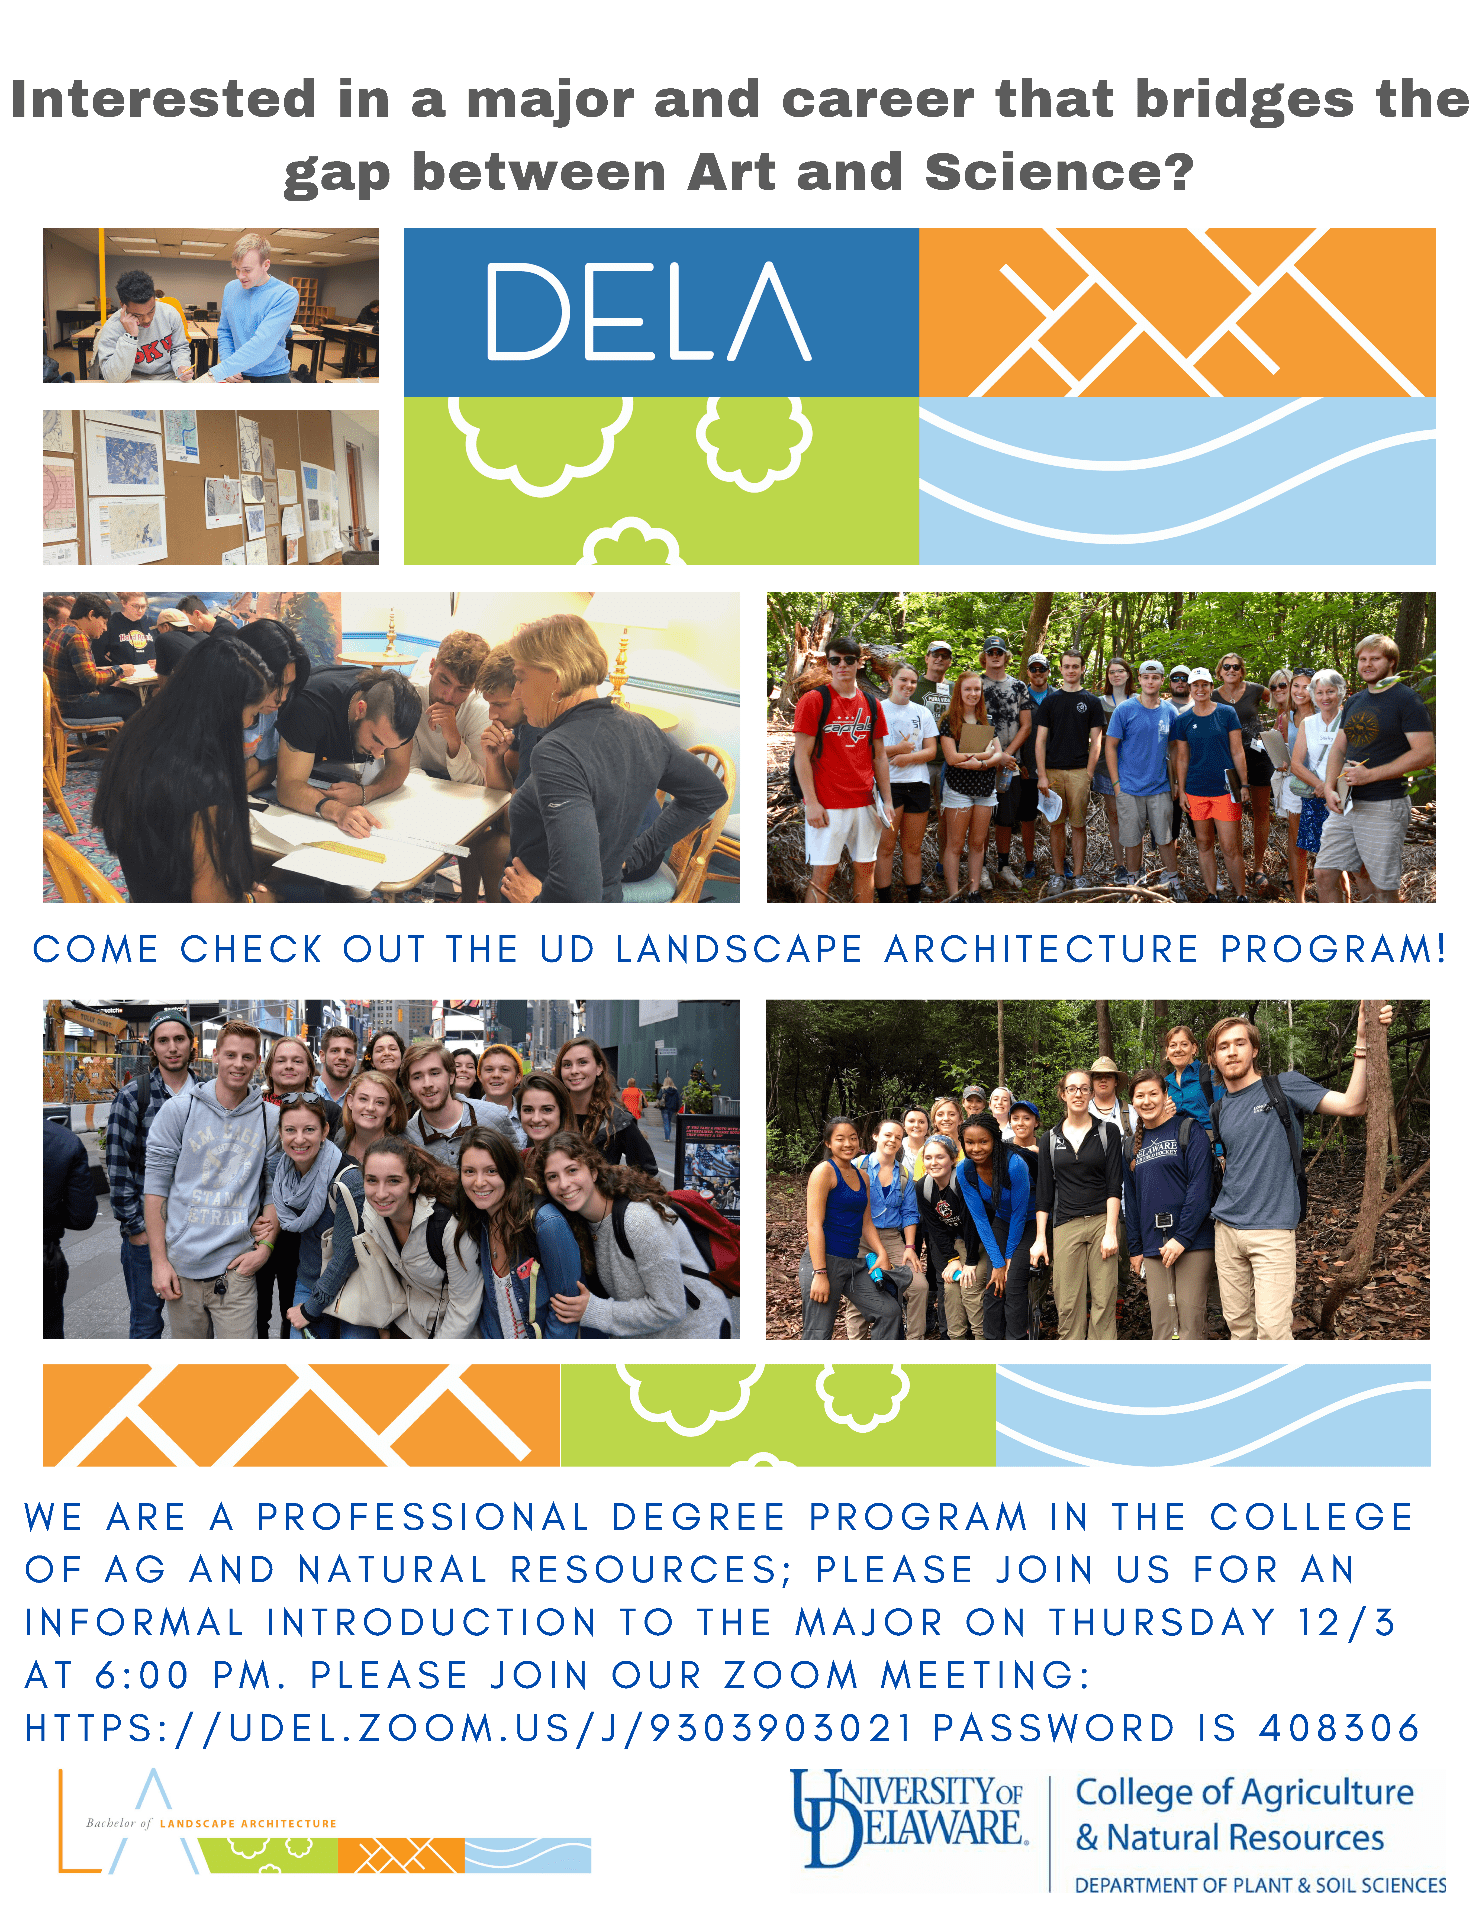 Interested in a major and career that bridges the gap between Art and Science? Come check out the UD Landscape Architecture Program! We are a professional degree program in the College of Ag and Natural Resources; please join us for an informal introduction to the major on Thursday 12/3 at 6:00 PM. Please join our zoom meeting: http://udel.zoom.us/j/9303903021 Password is 408306